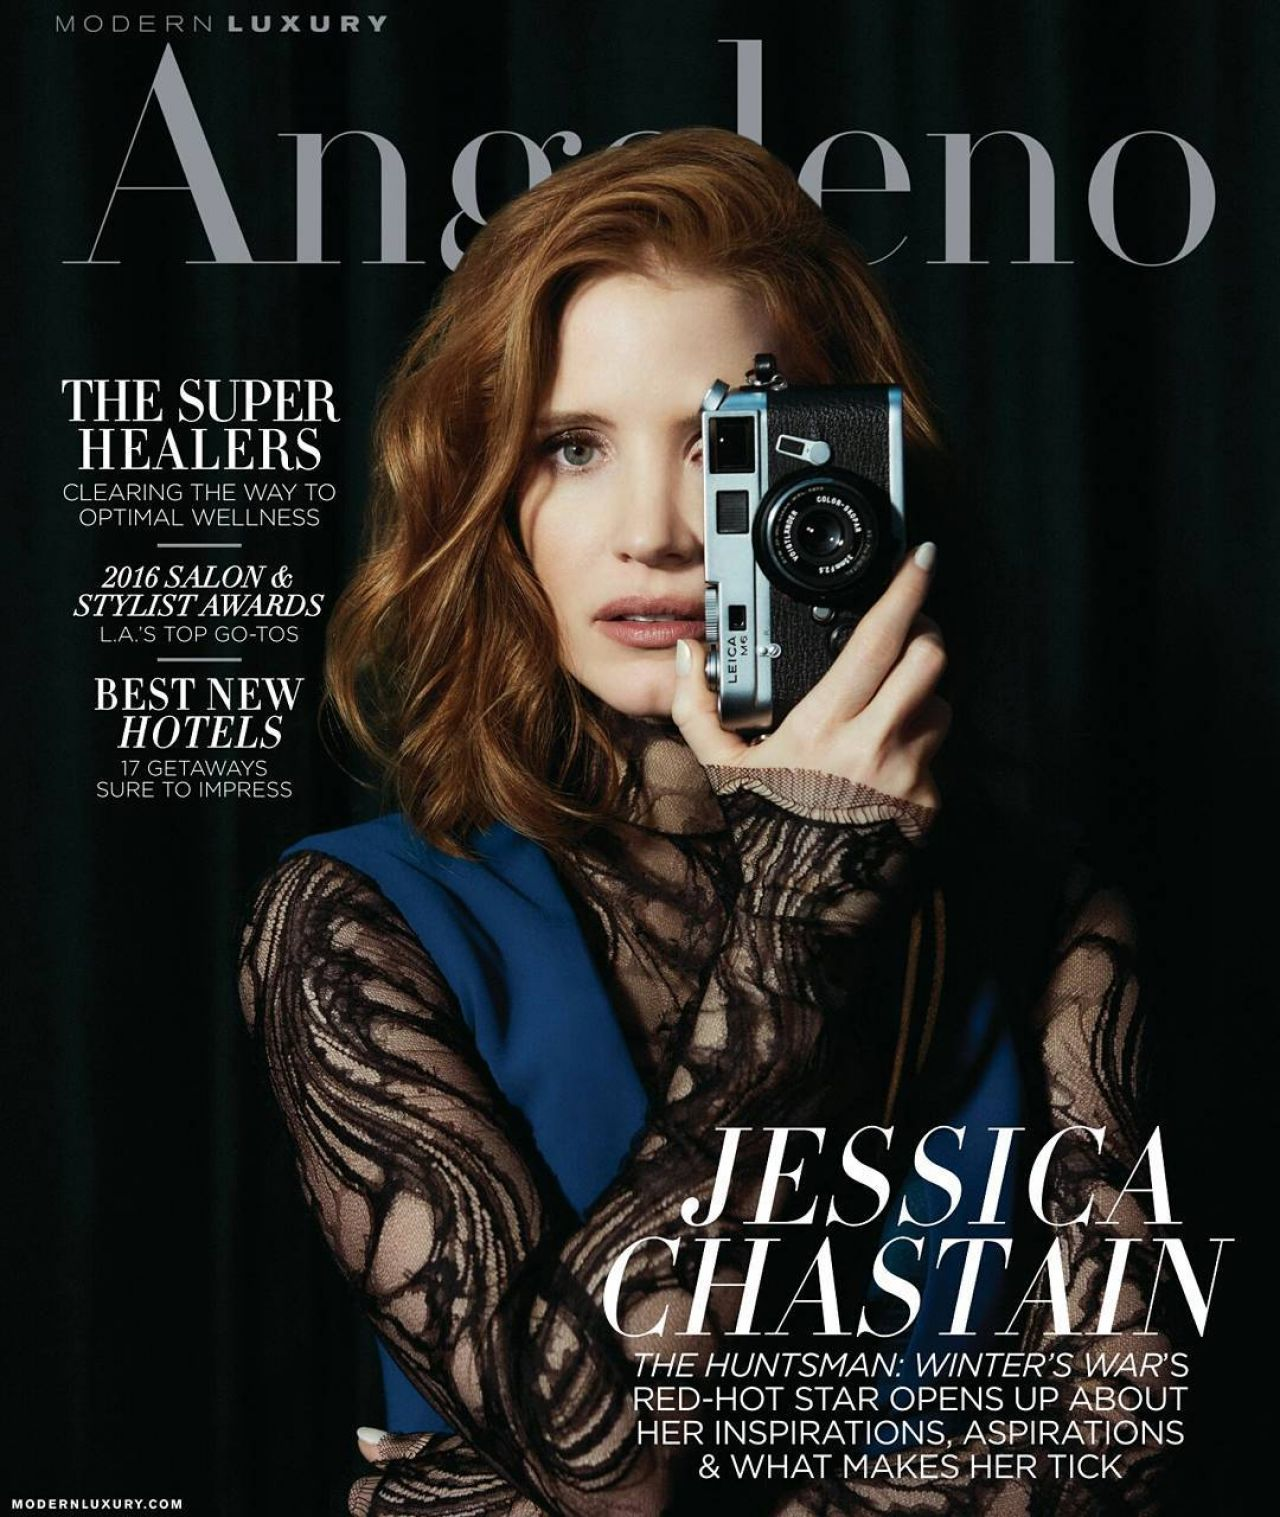 Jessica Chastain Angeleno Magazine May 2016 Cover And Photos